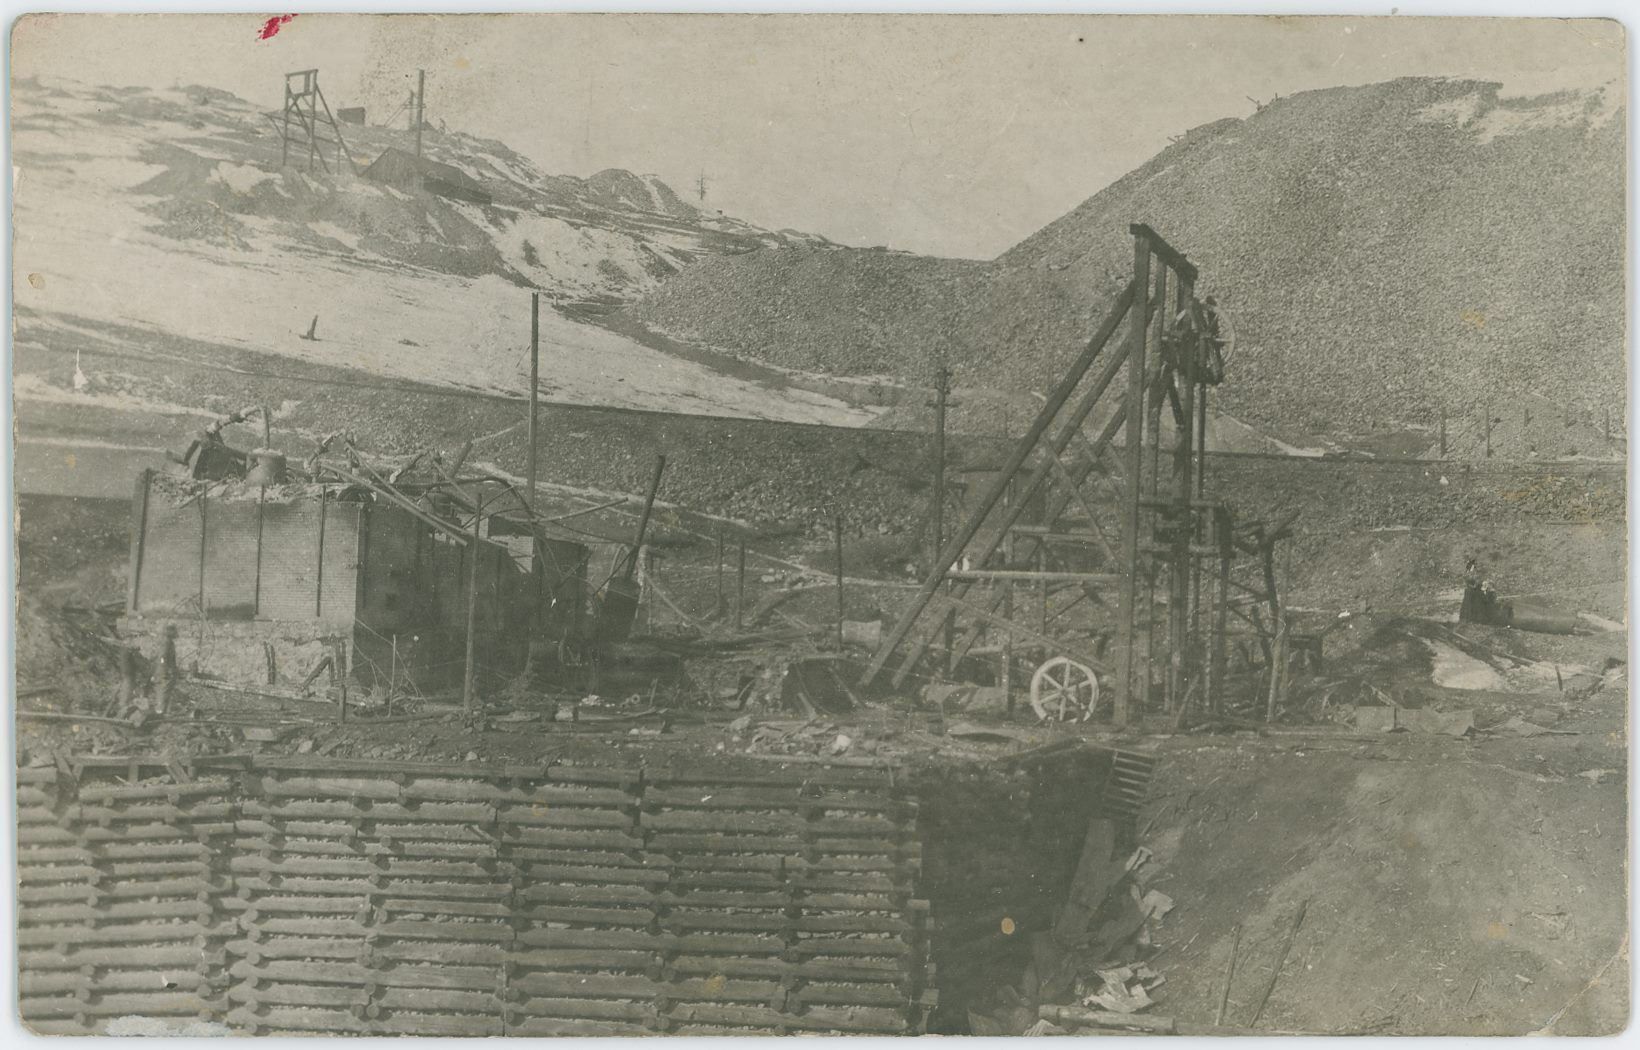 This is a view at what was left of the Granite Mine after the explosion January 8, 1911. Or possible some days/week after, not sure if the Head-frame is put up after wrecking of the original one, or if this was what was in use at time of the explosion that wrecked the Engine/Hoist House seen at left side.    The crib-wall seen in foreground is holding the ground back from the Golden Circle trackage that ran in the cut at the bottom. While behind the headframe is seen another railroad track, almost halfway down from the top on the right-hand side, this is the Short Line Ajax branch-line.    Dump at upper right I assume is part of the Portland No. 2 dumps, while the mine seen more to the left near top of image is at the moment of writing this [28.05.2018] a mystery mine to me, actually both, as there is one more even higher up…